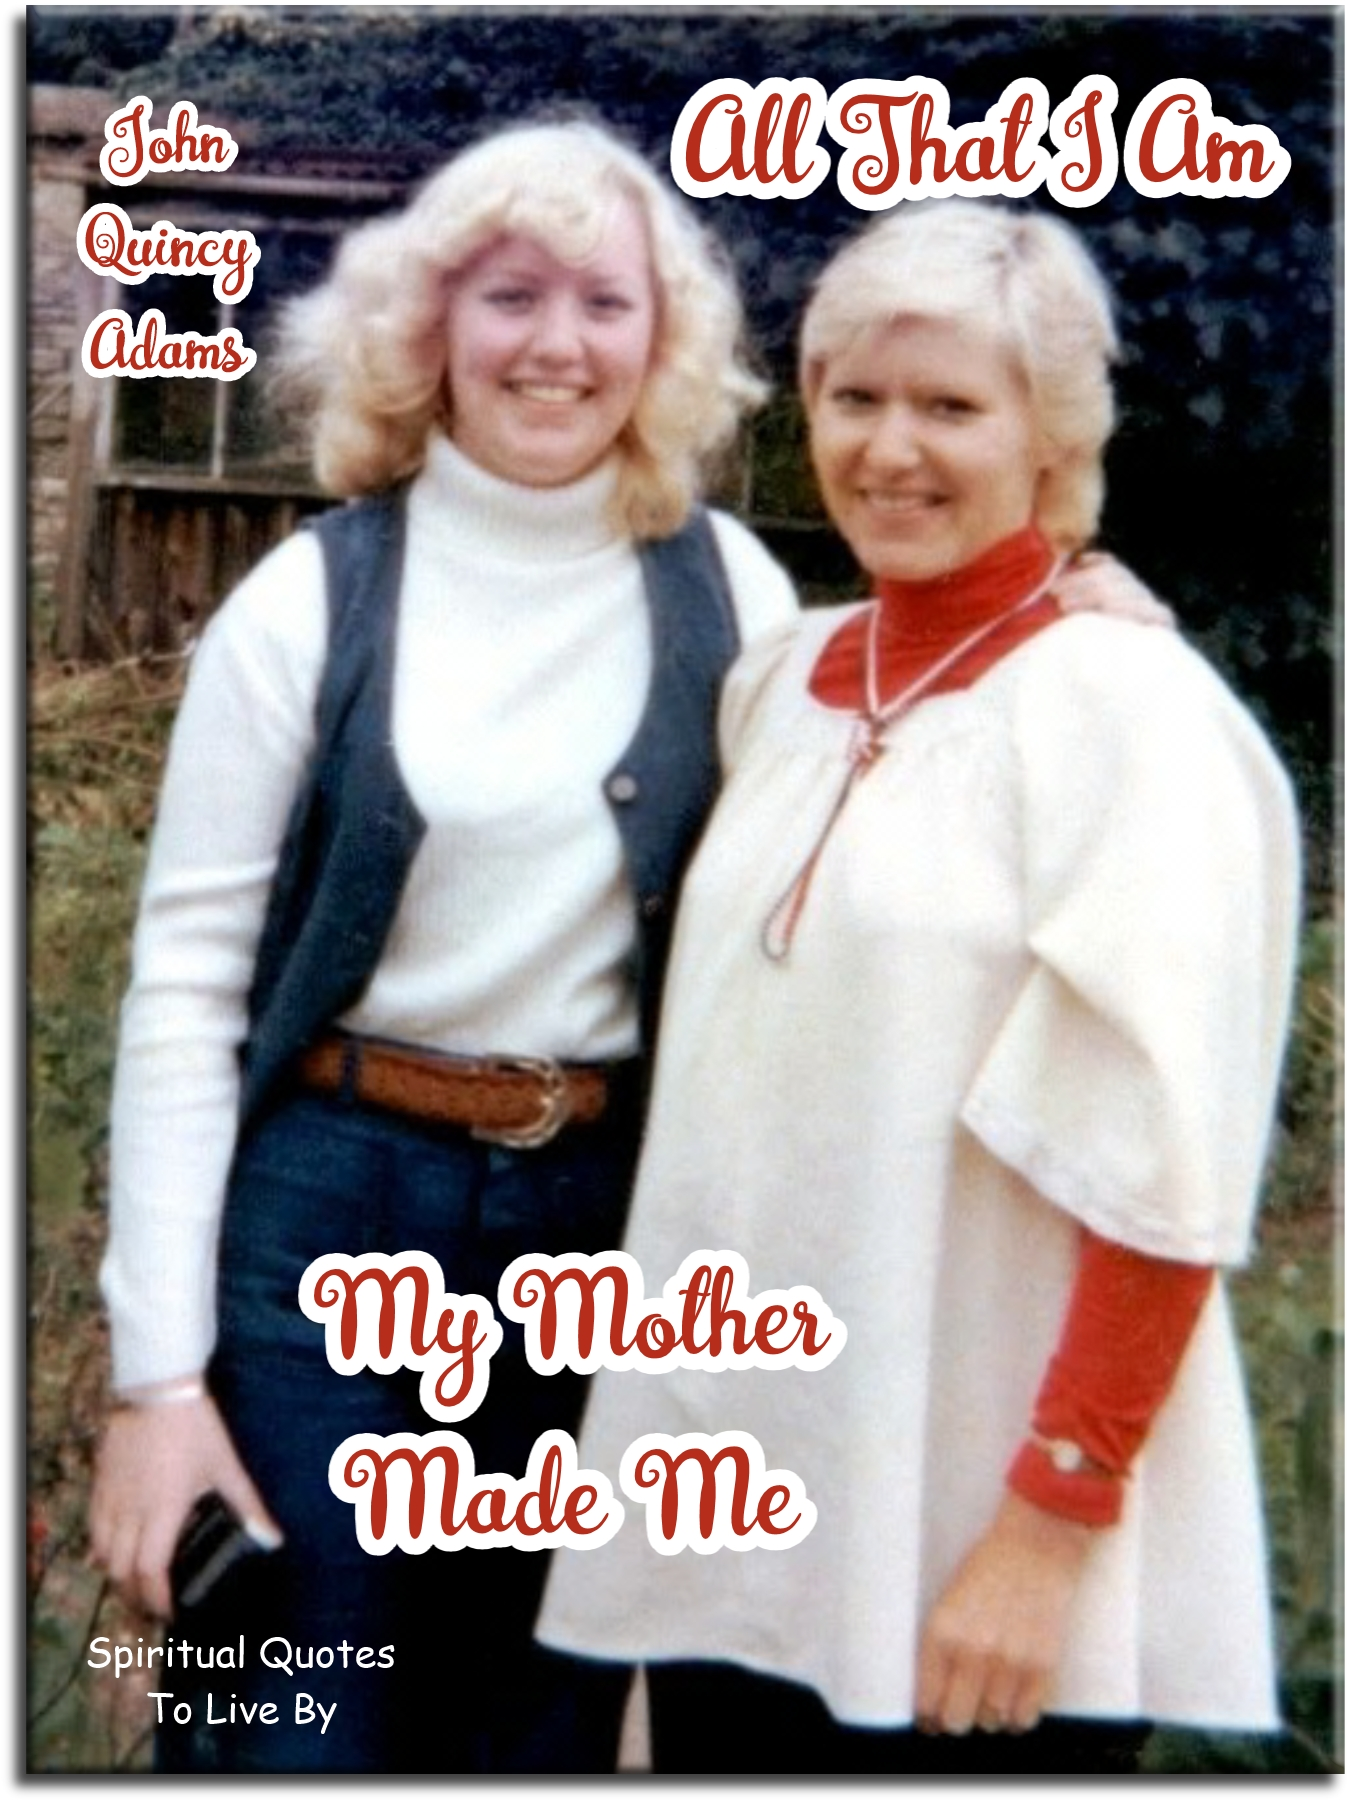 John Quincy Adams quote: All that I am, my mother made me. - Spiritual Quotes To Live By